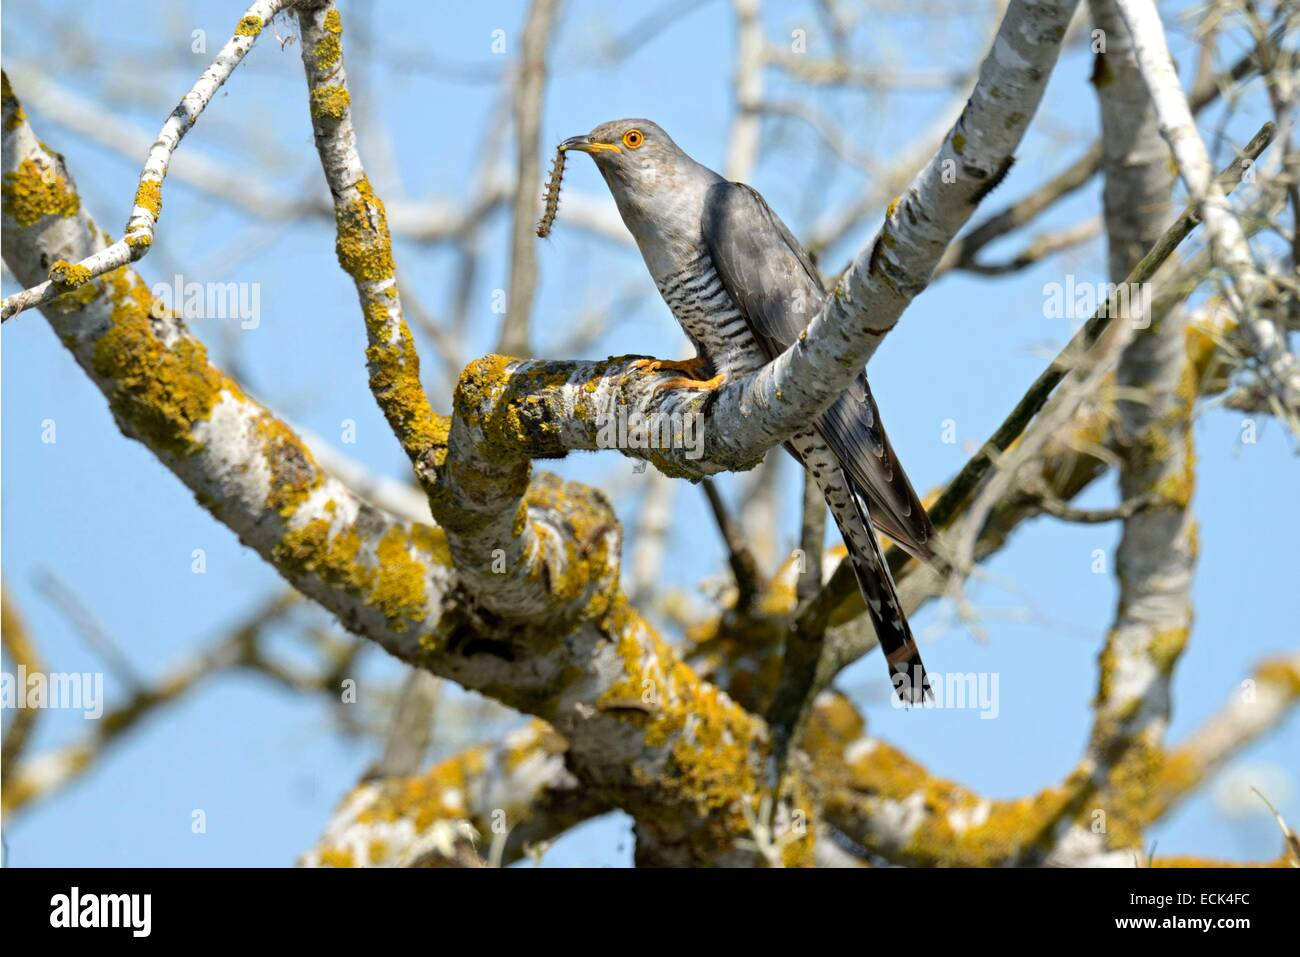 Romania, Danube Delta listed as World Heritage by UNESCO, Cuckoo (Cuculus canorus), capturing a caterpillar - Stock Image